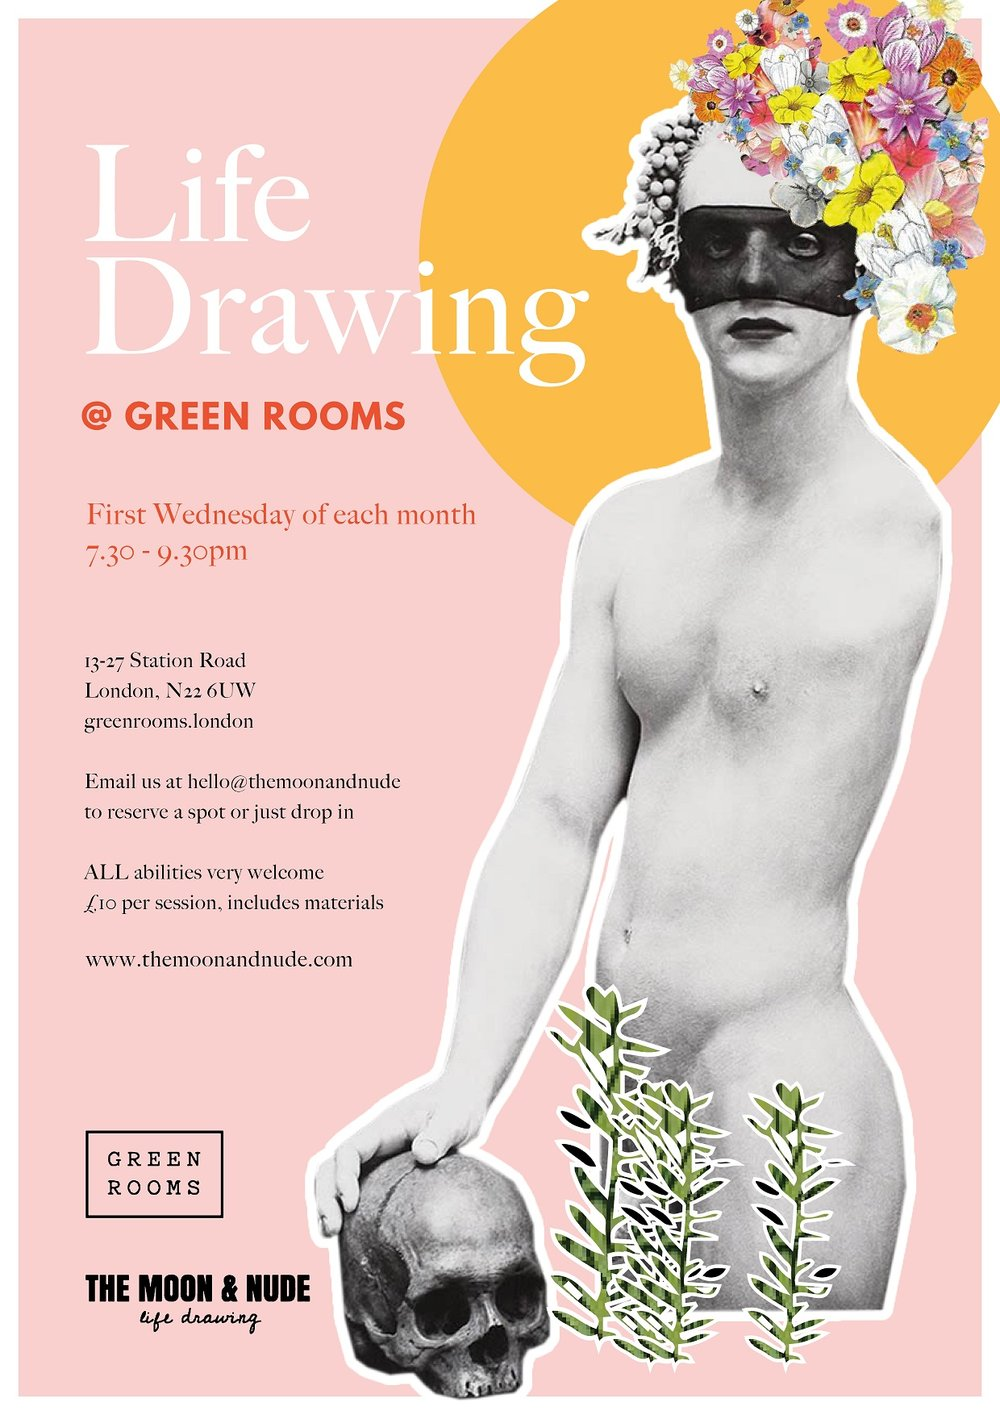 Life drawing at Green Rooms_smaller.jpg